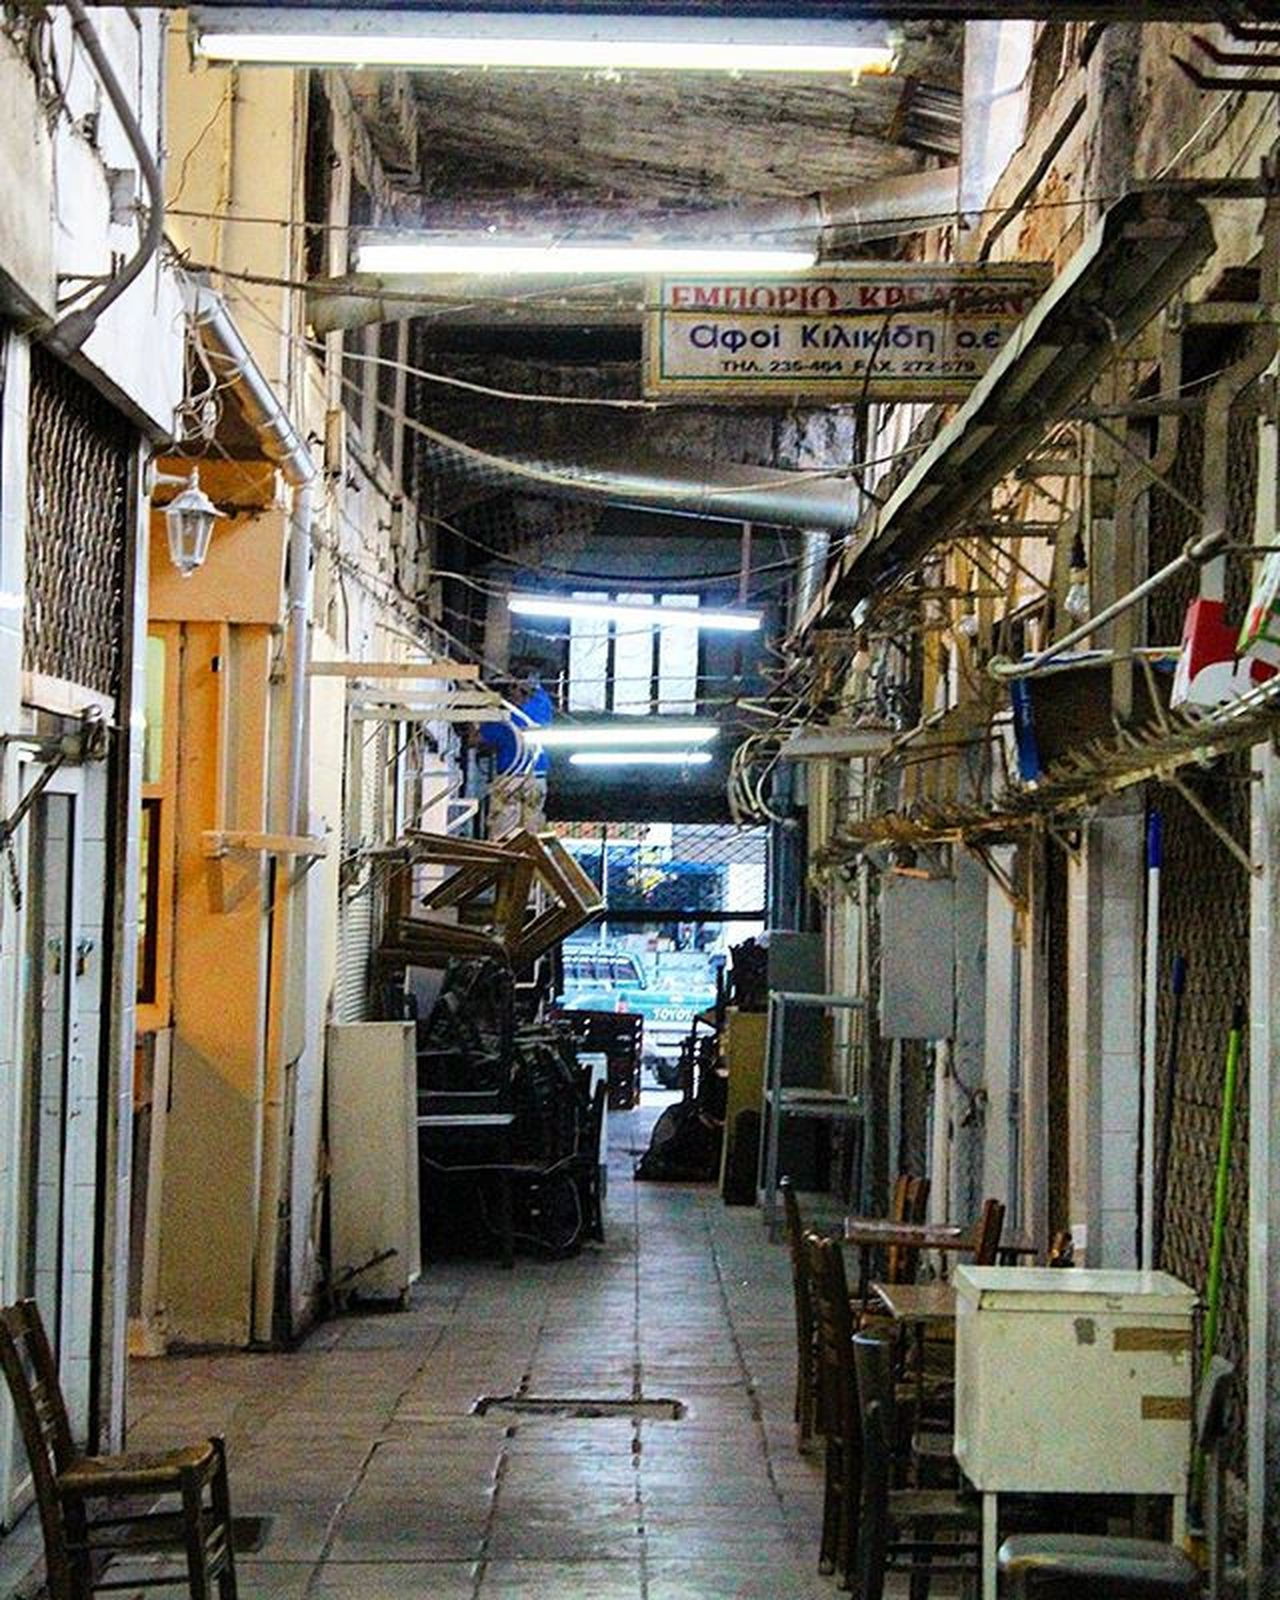 Market Oldmarket Downtown City Stores Old Abandoned Urban Street Walk Out Streetphotography Indie Grunge Citylife Explore Photography Canon 700D Nofilter Thessaloniki Skg Modiano